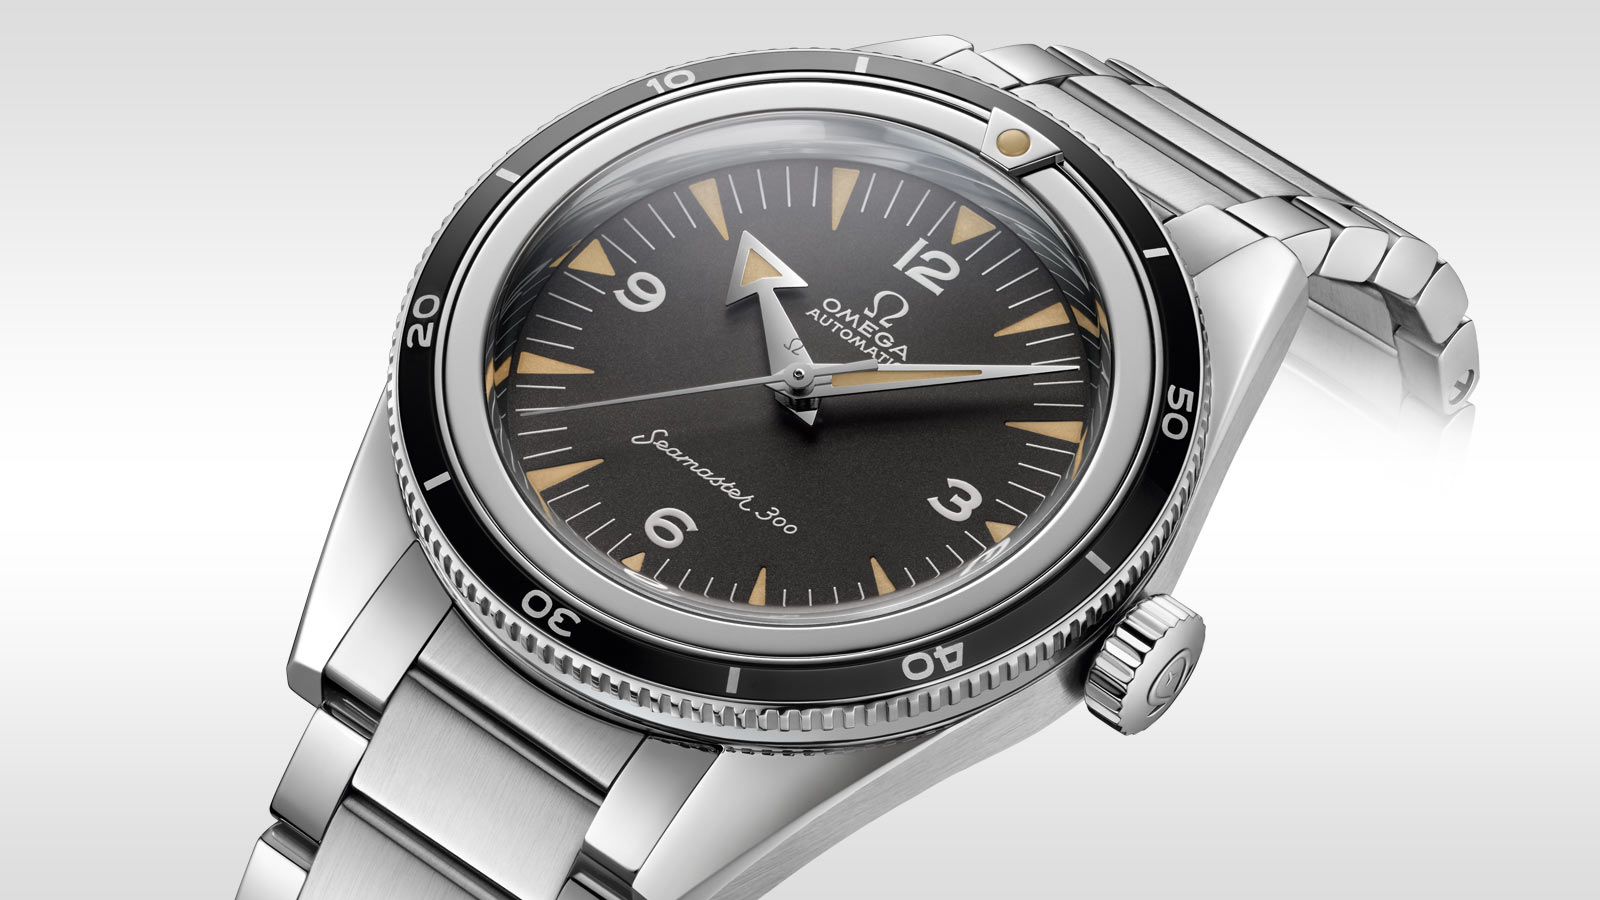 Seamaster The Collection Seamaster 300 Omega Co‑Axial Master Chronometer 39 mm - 234.10.39.20.01.001 - View 1